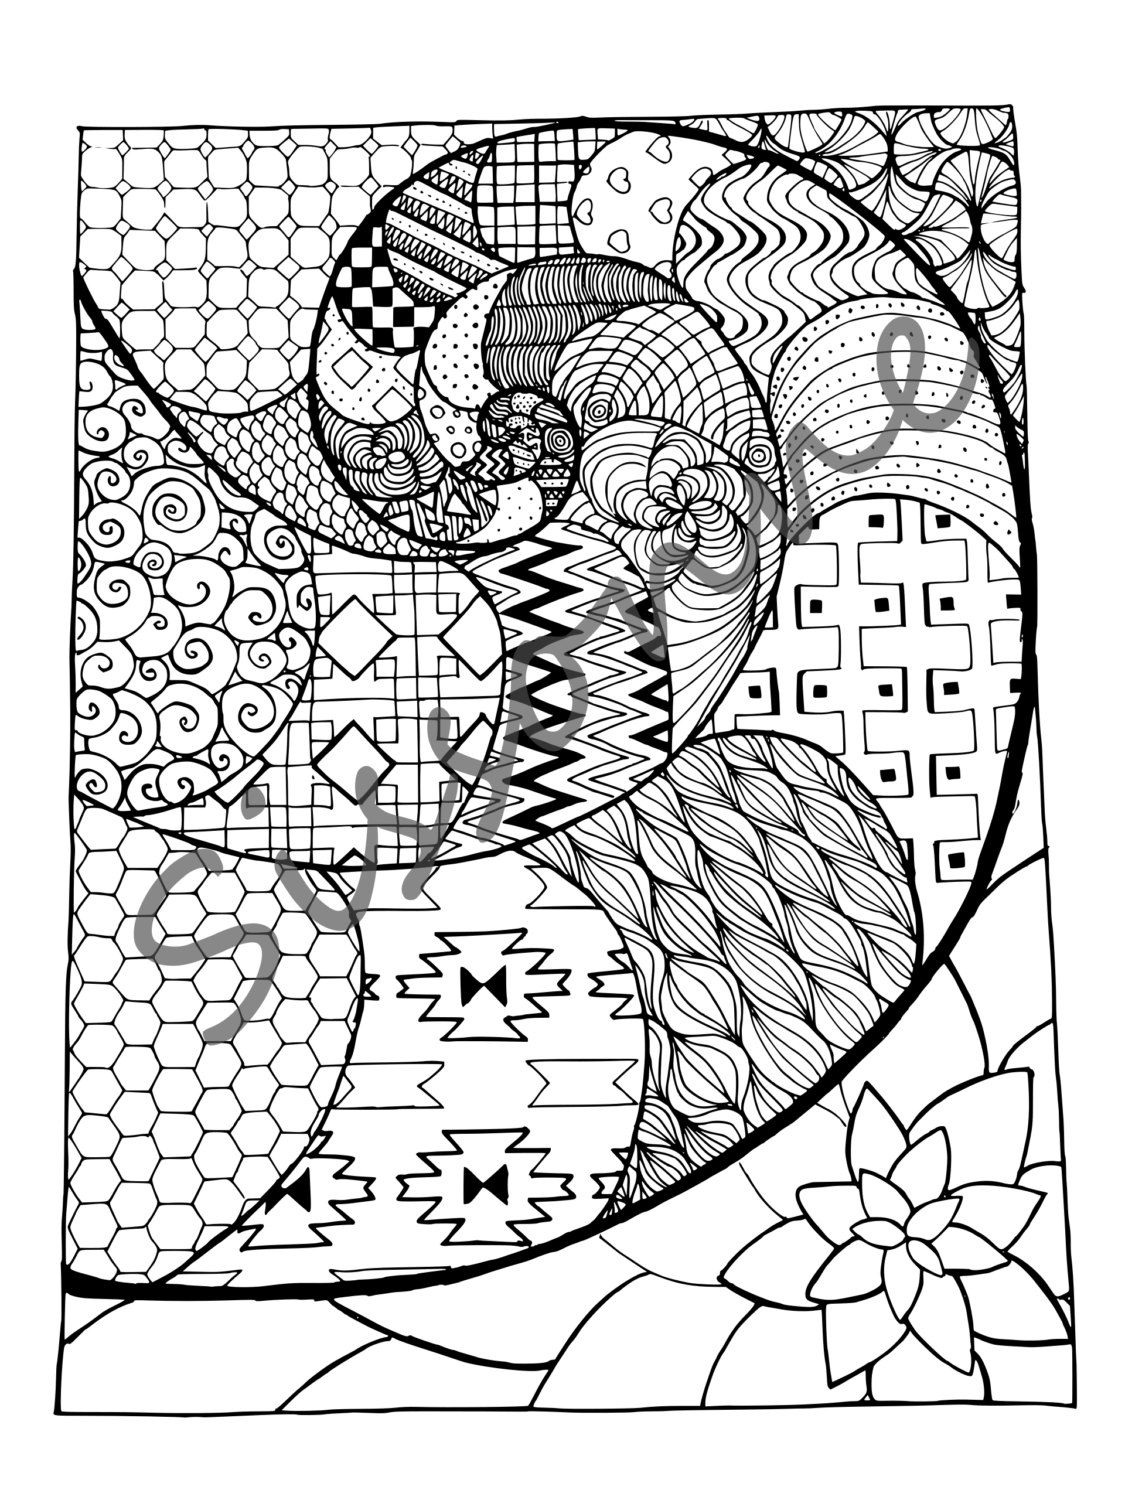 coloring pages zentangle zentangle to print for free zentangle kids coloring pages pages coloring zentangle